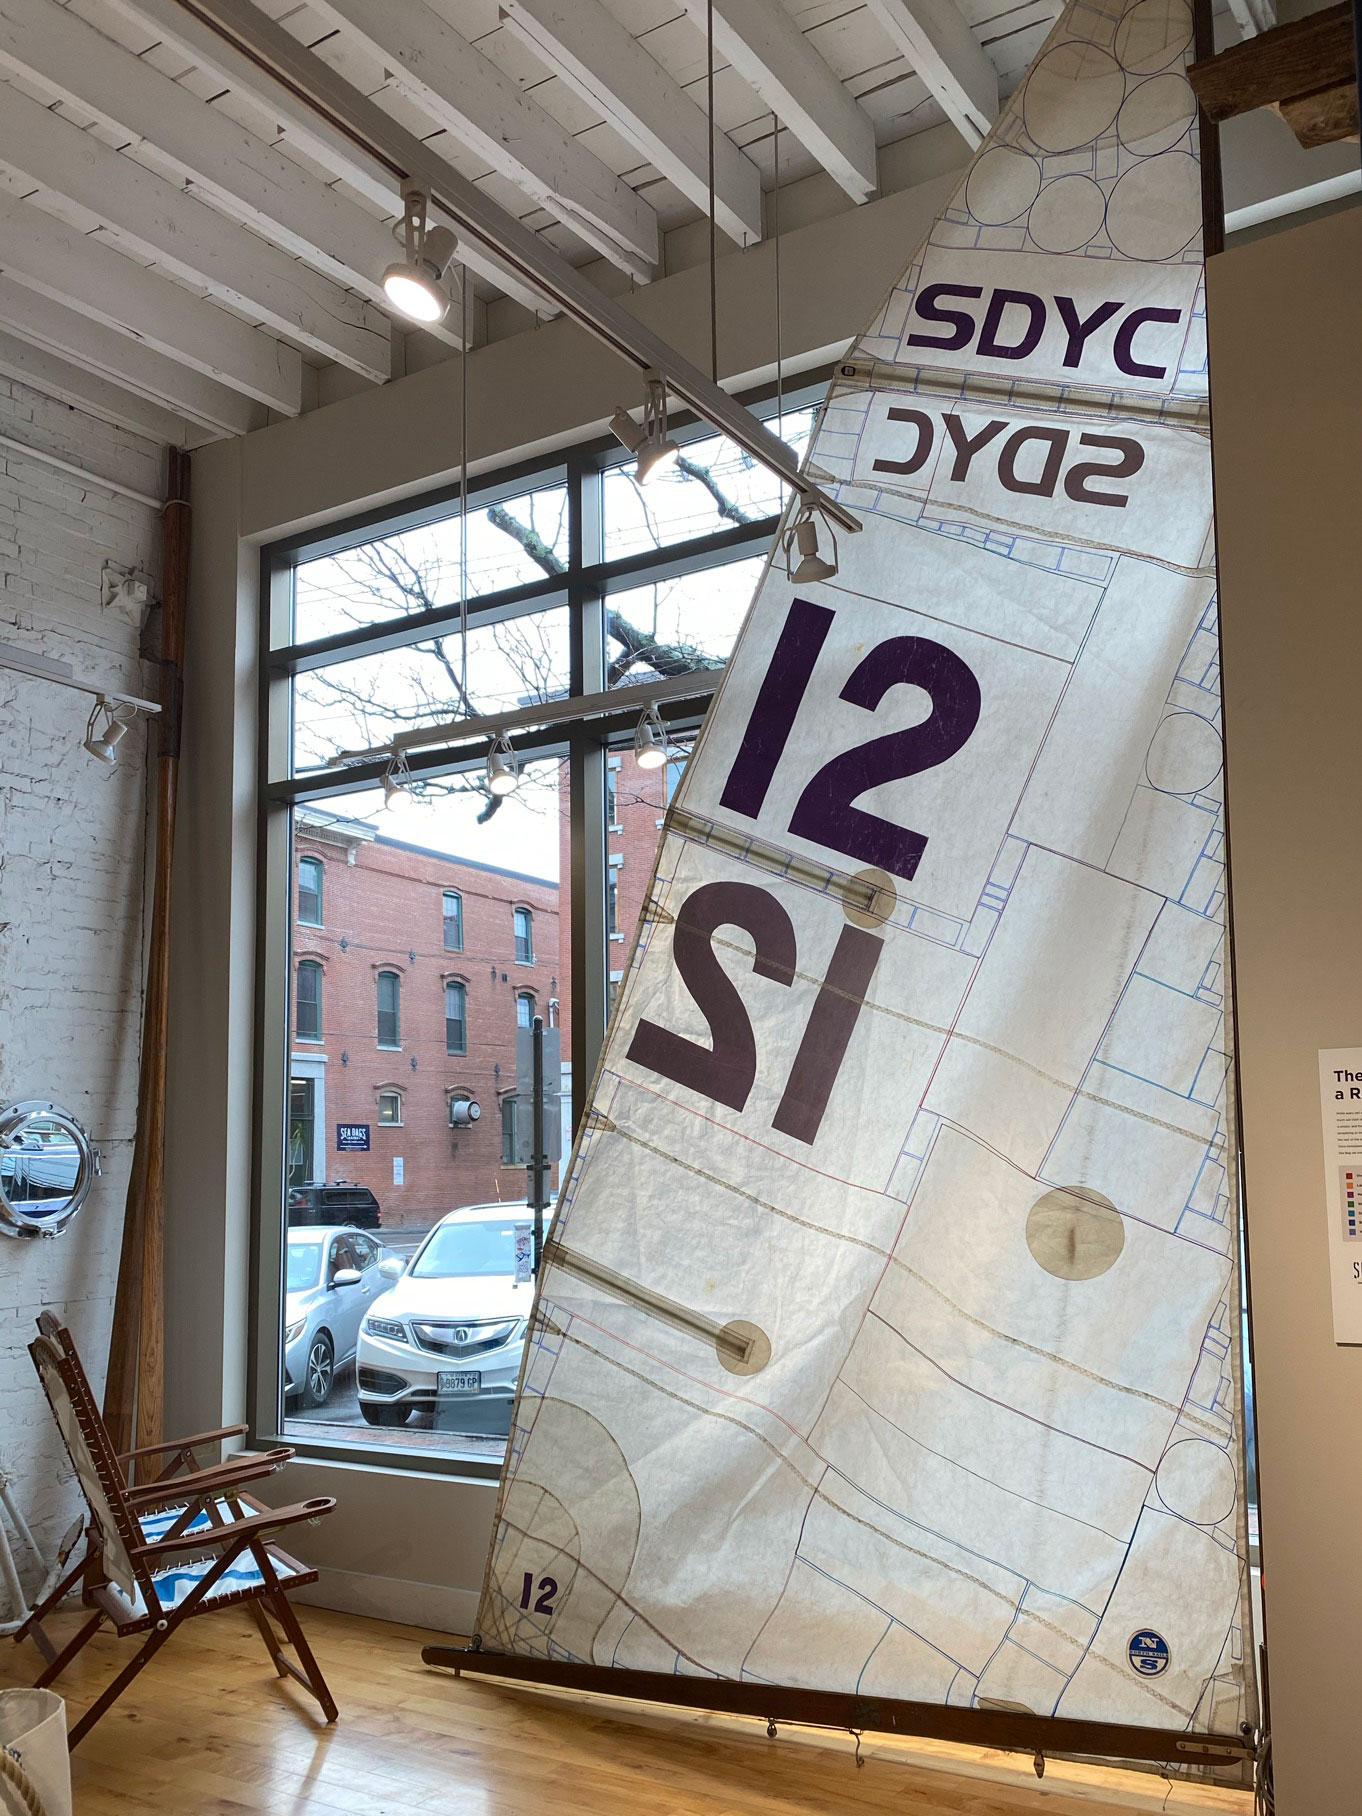 A sail is hanging on a mast in the store, with lines showing how all parts of a sail are salvaged